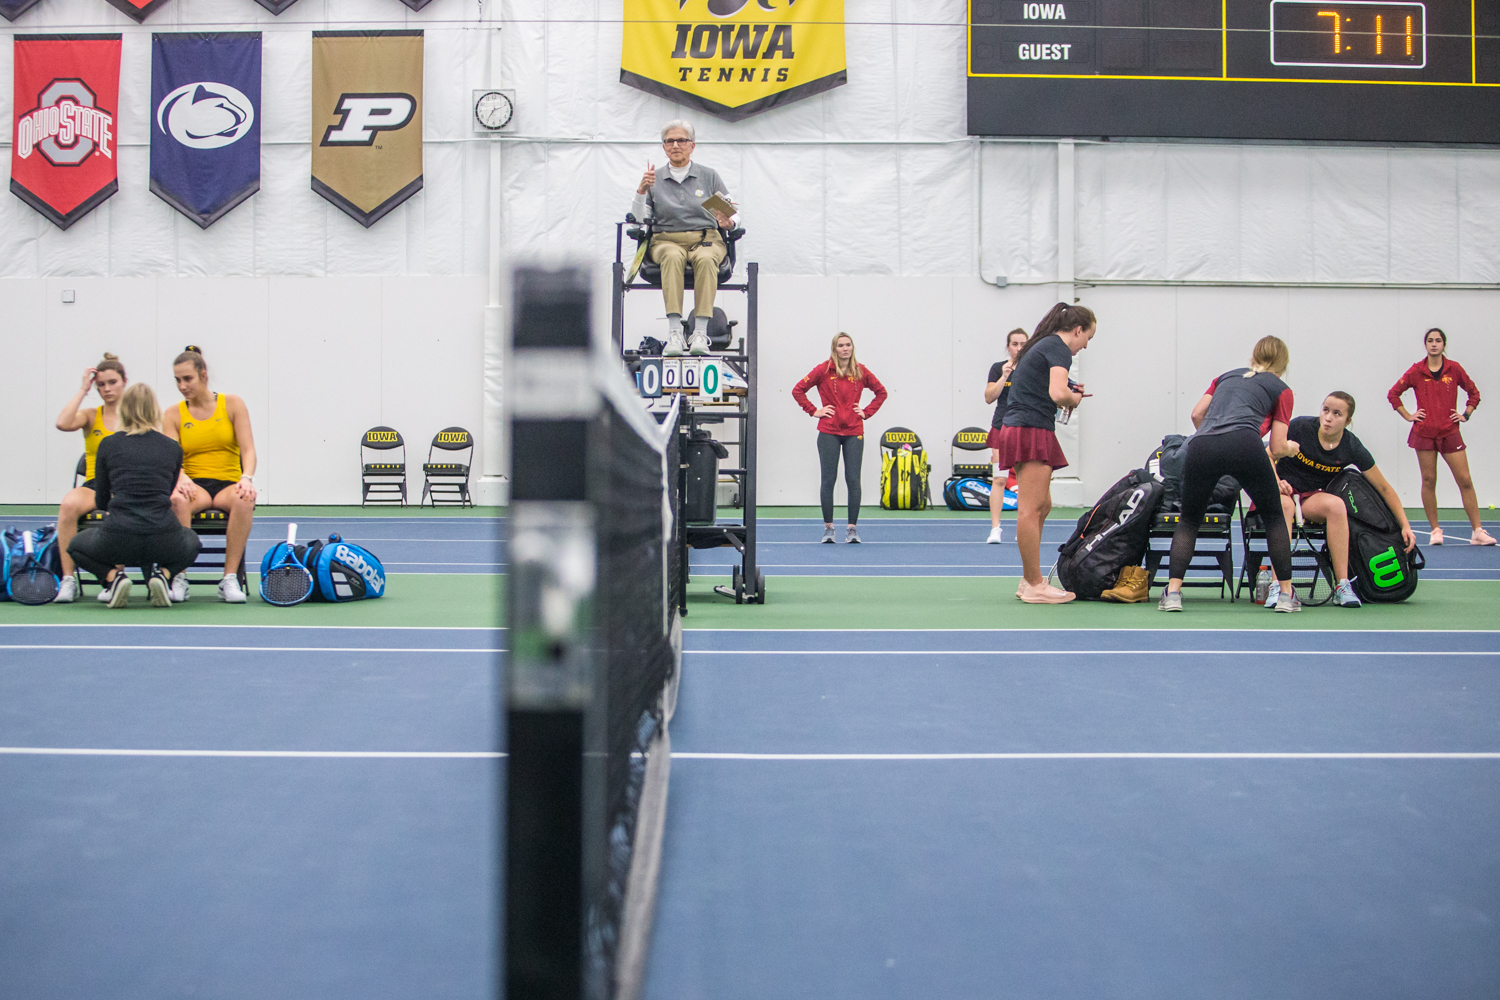 Coaches+speak+with+their+players+during+a+women%27s+tennis+matchup+between+Iowa+and+Iowa+State+at+the+Hawkeye+Tennis+and+Recreation+Complex+on+Friday%2C+February+8%2C+2019.++The+Hawkeyes+dropped+the+doubles+point+but+swept+singles+matches%2C+defeating+the+Cyclones+4-1.